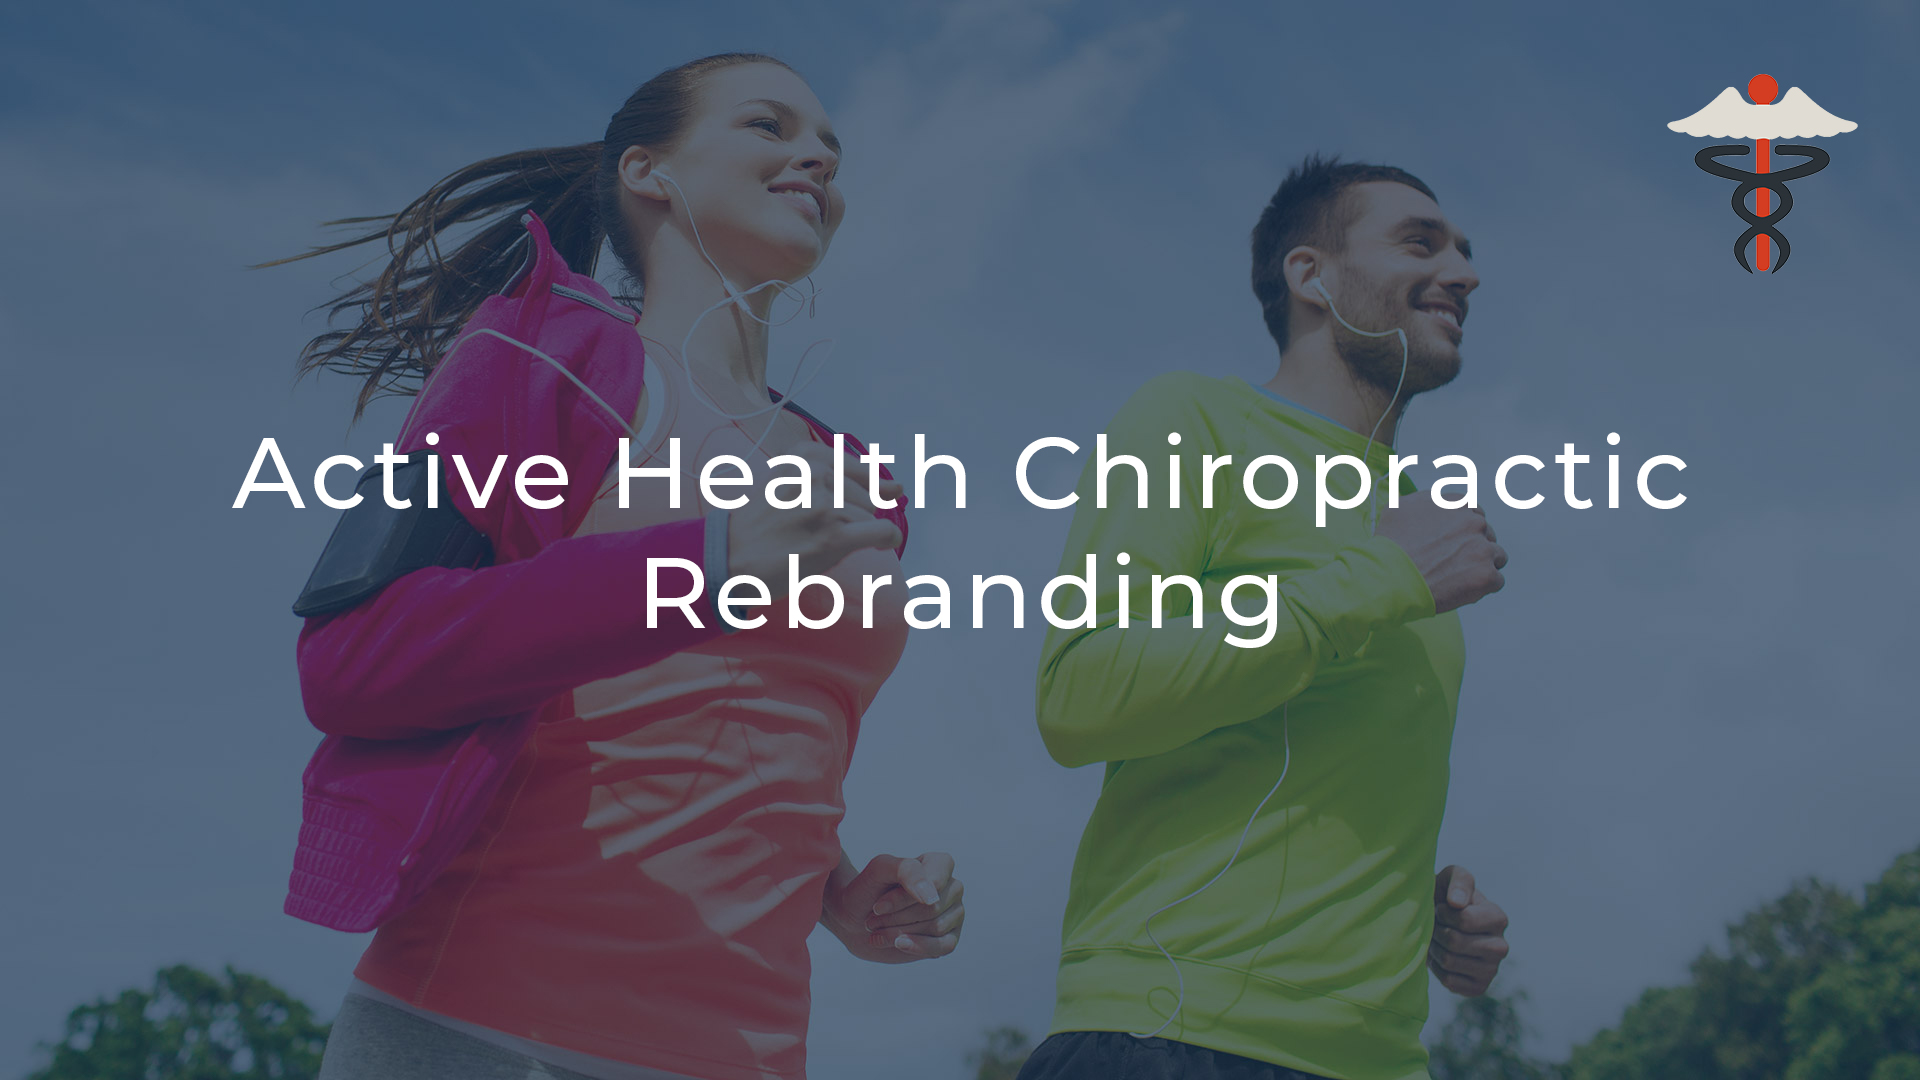 Active Health Chiropractic Hereford Rebranding